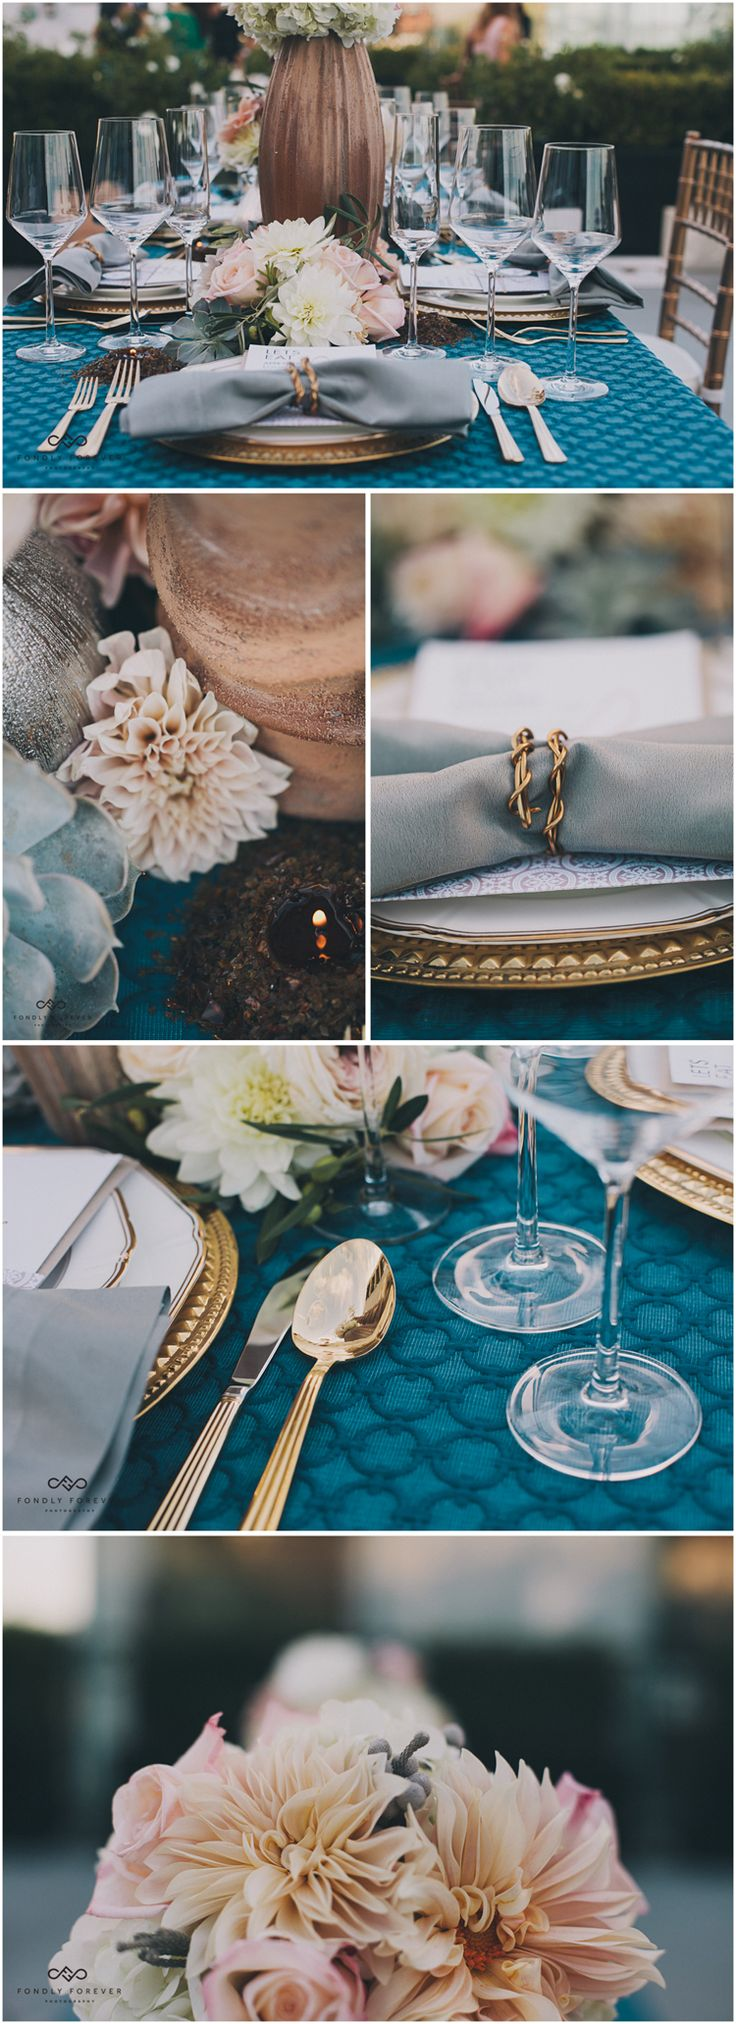 Modern Mediterranean Wedding Ideas by Fondly Forever Photography {Featured on Ruffled}-1.2